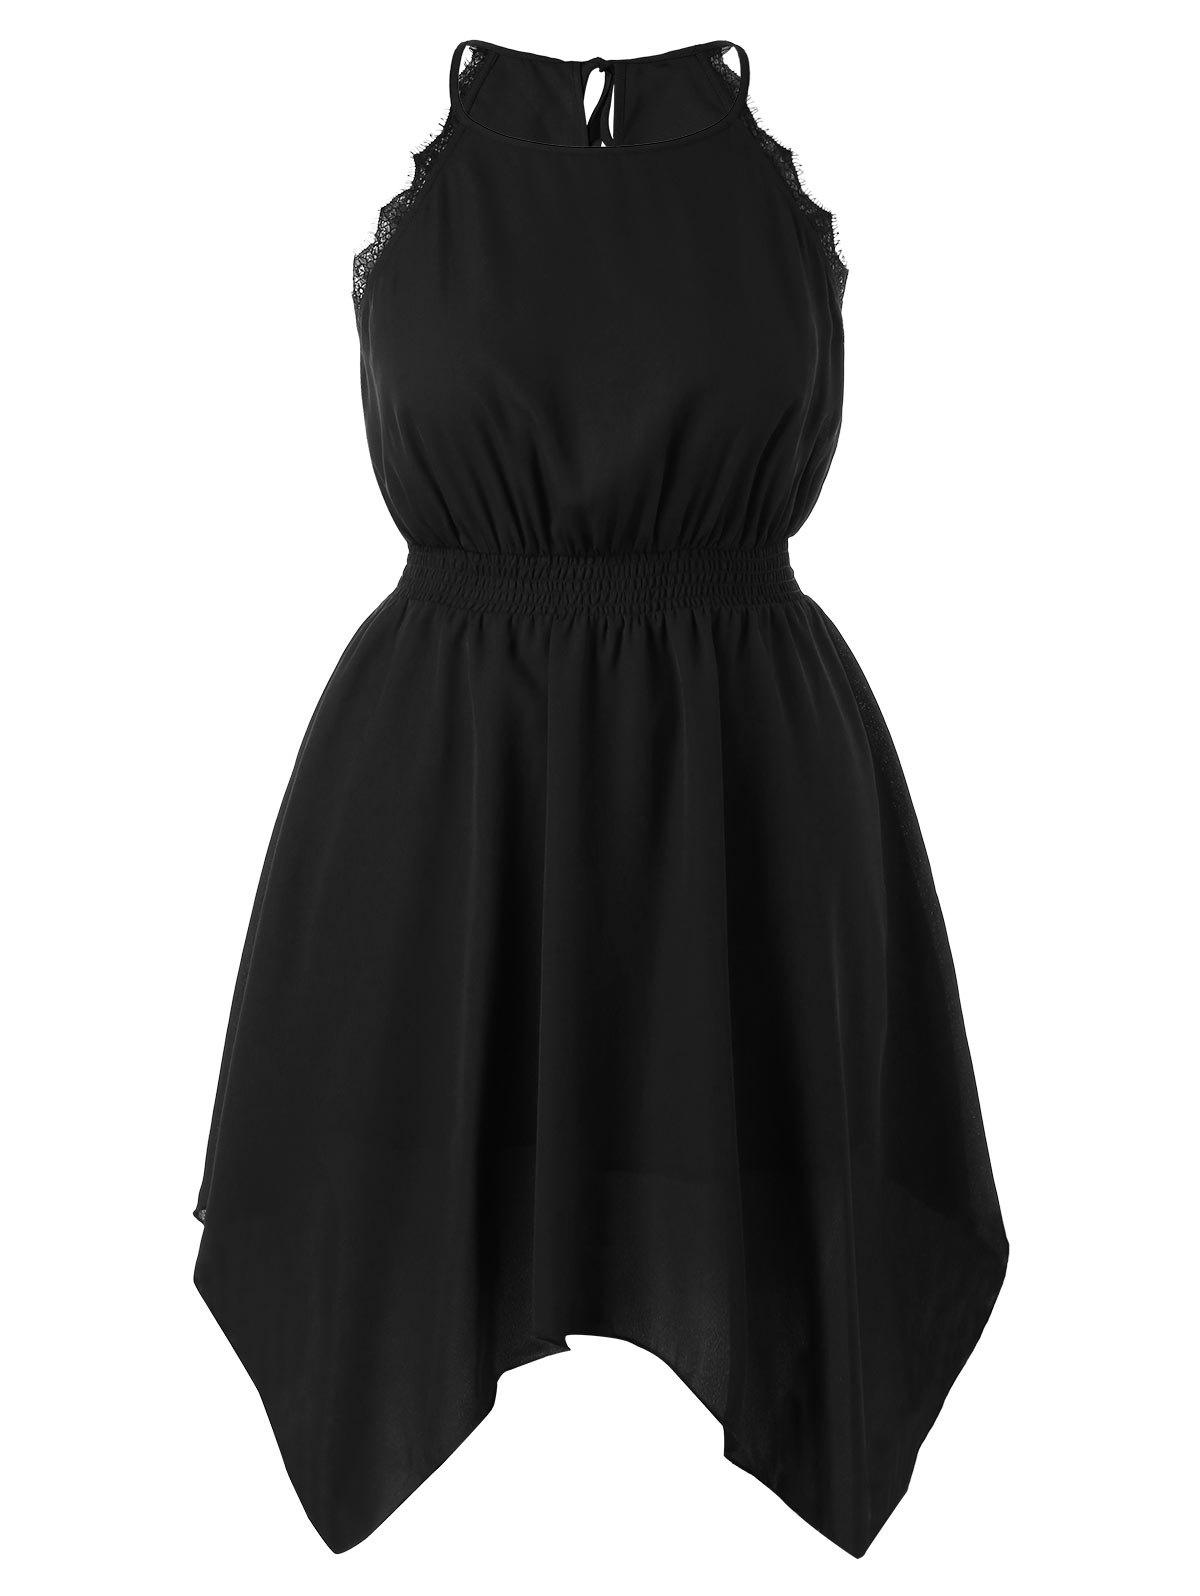 Plus Size Lace Trim Spaghetti Strap Dress - BLACK L